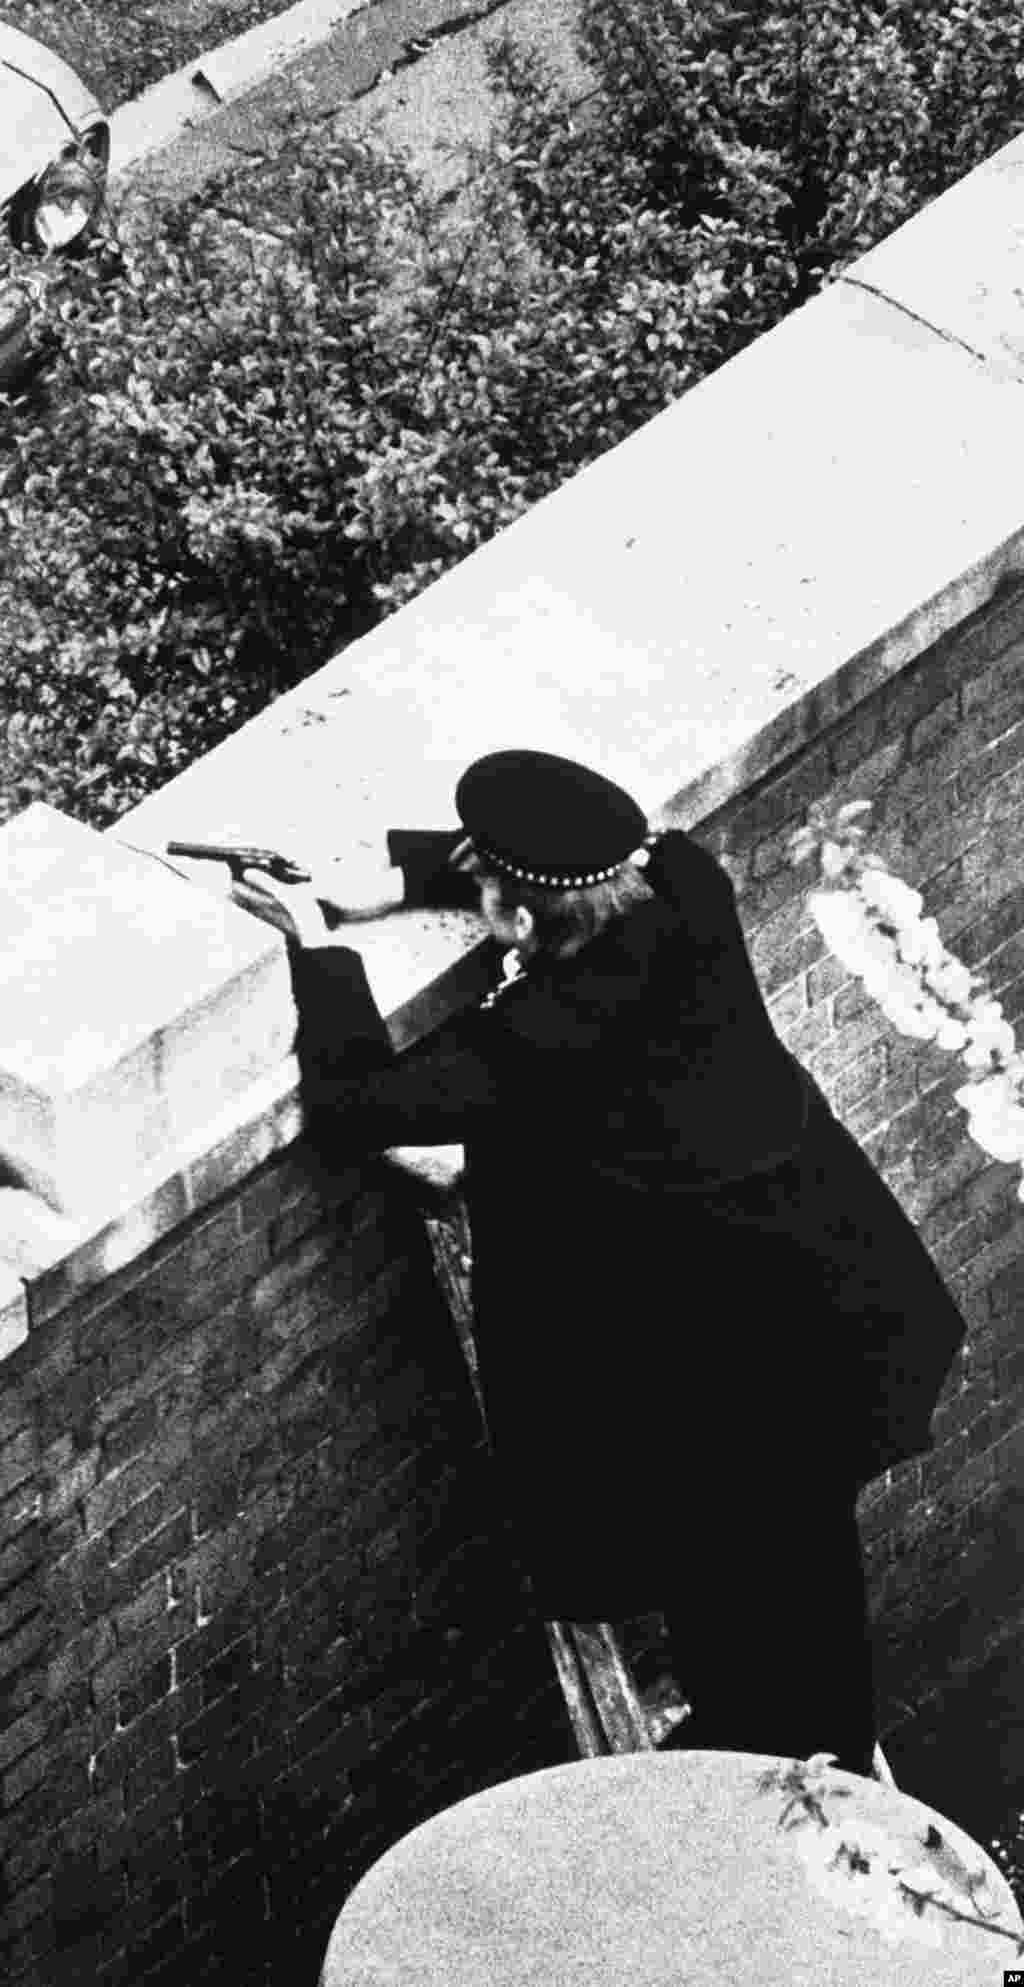 An armed police officer points his handgun toward the Iranian Embassy in London on the first day of the siege, April 30, 1980. The six gunmen demanded that Arab prisoners in Iran's Khuzestan Province be released and that their own safe passage out of the United Kingdom be guaranteed. The British government quickly rejected the demand for safe passage and a siege ensued.